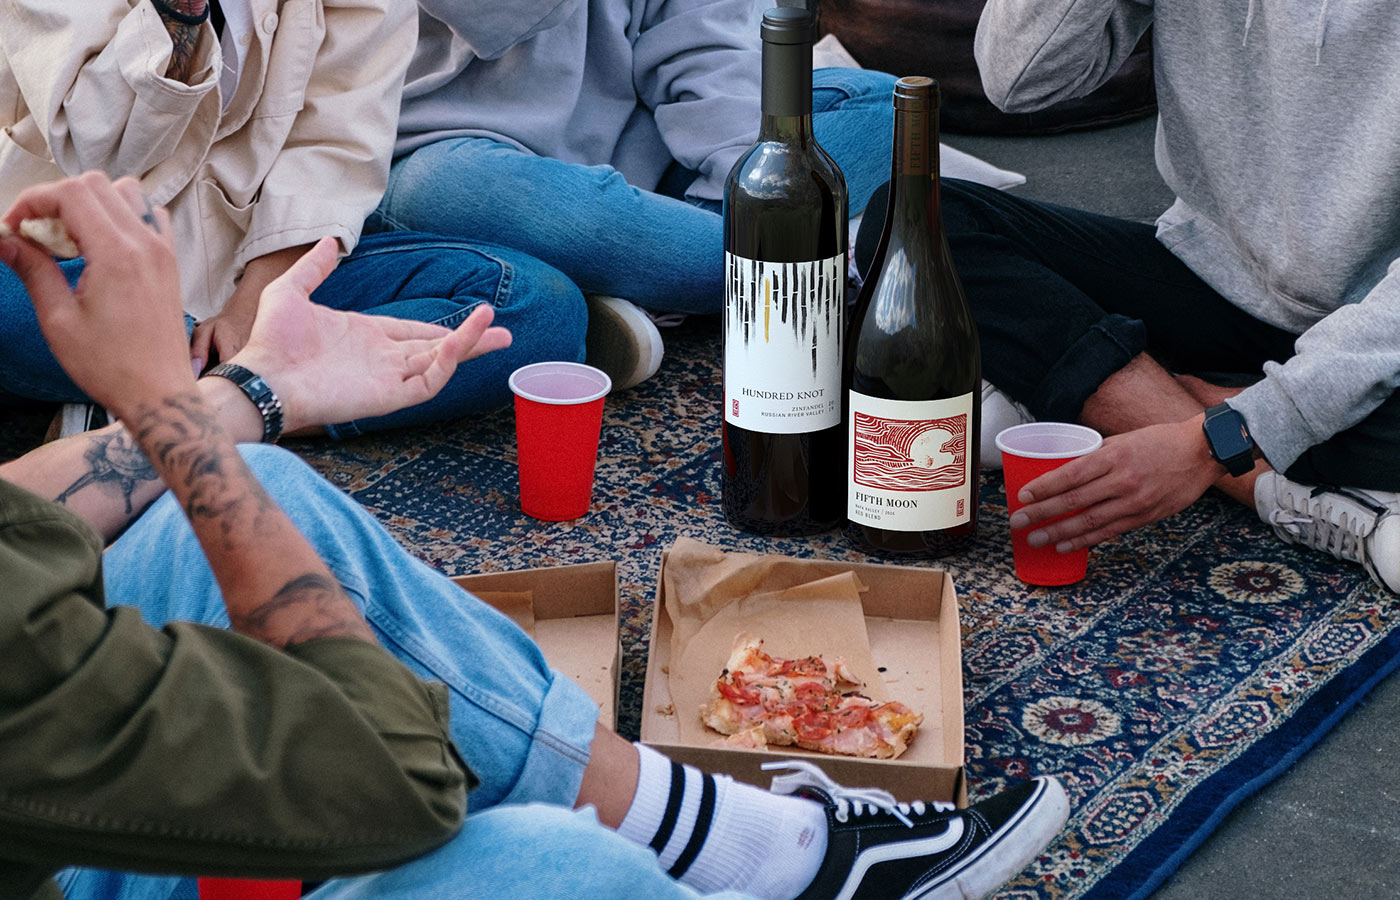 Friends enjoying pizza and wine together.